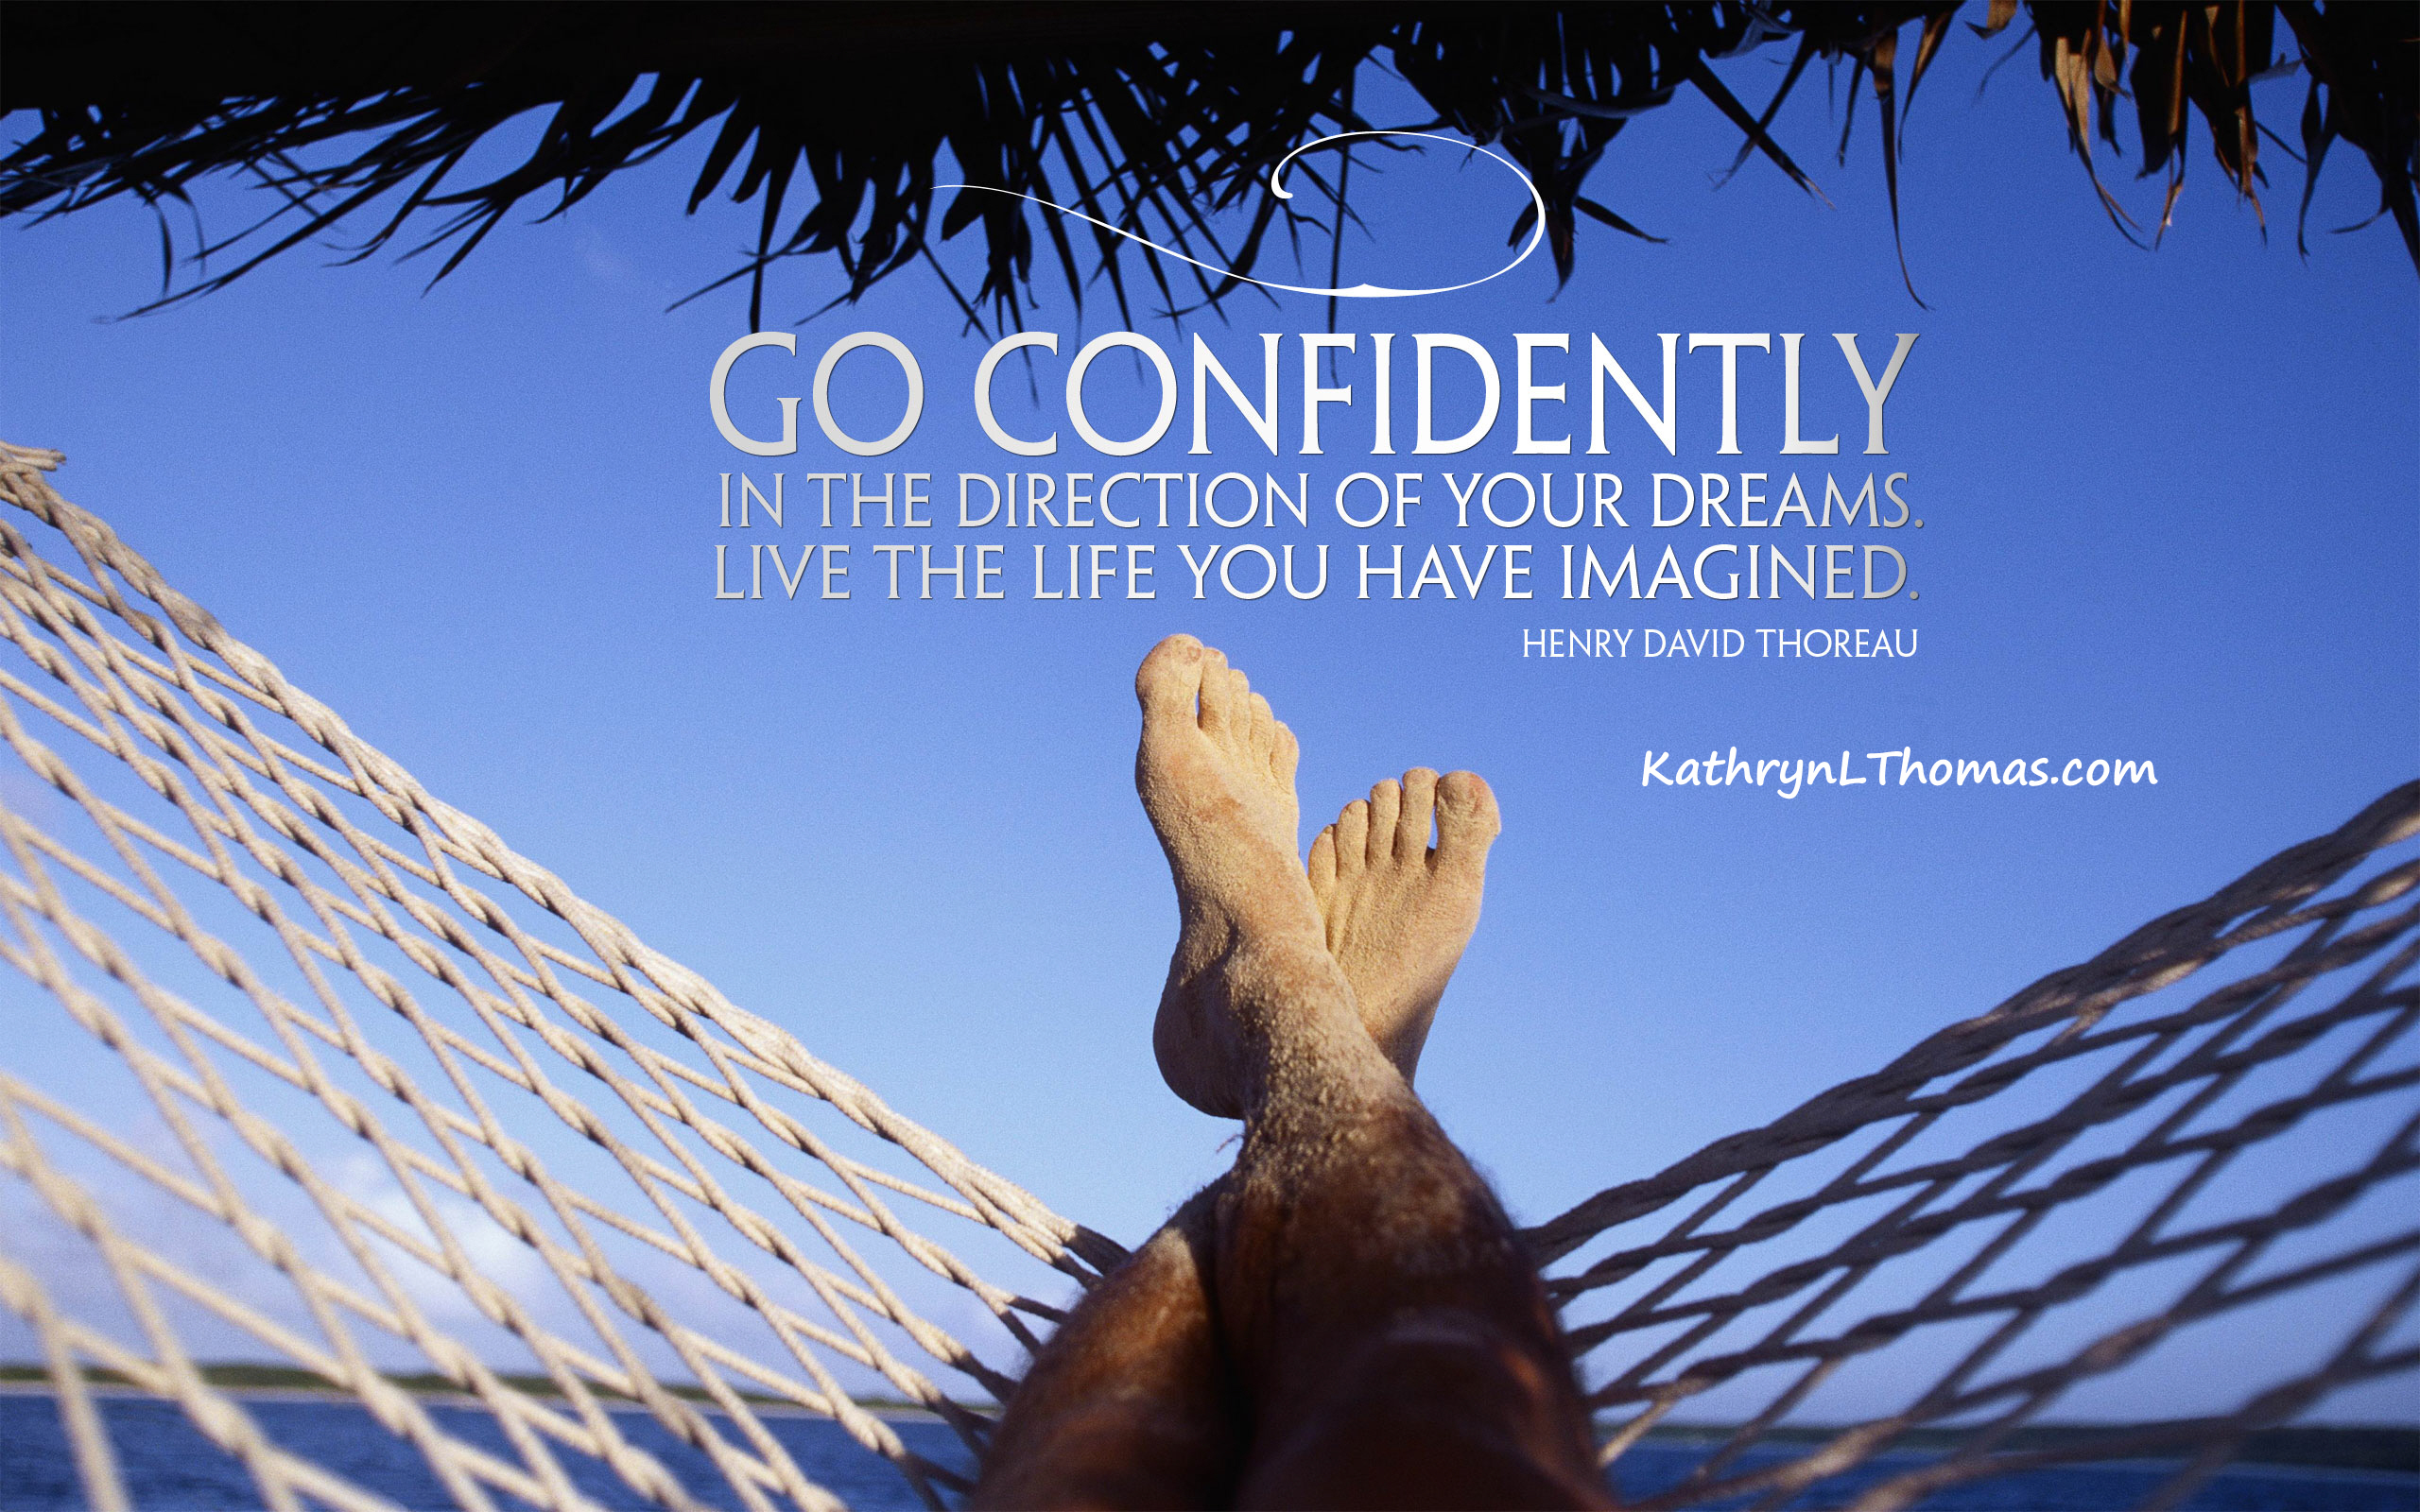 Henry David Thoreau quote about going for your dreams